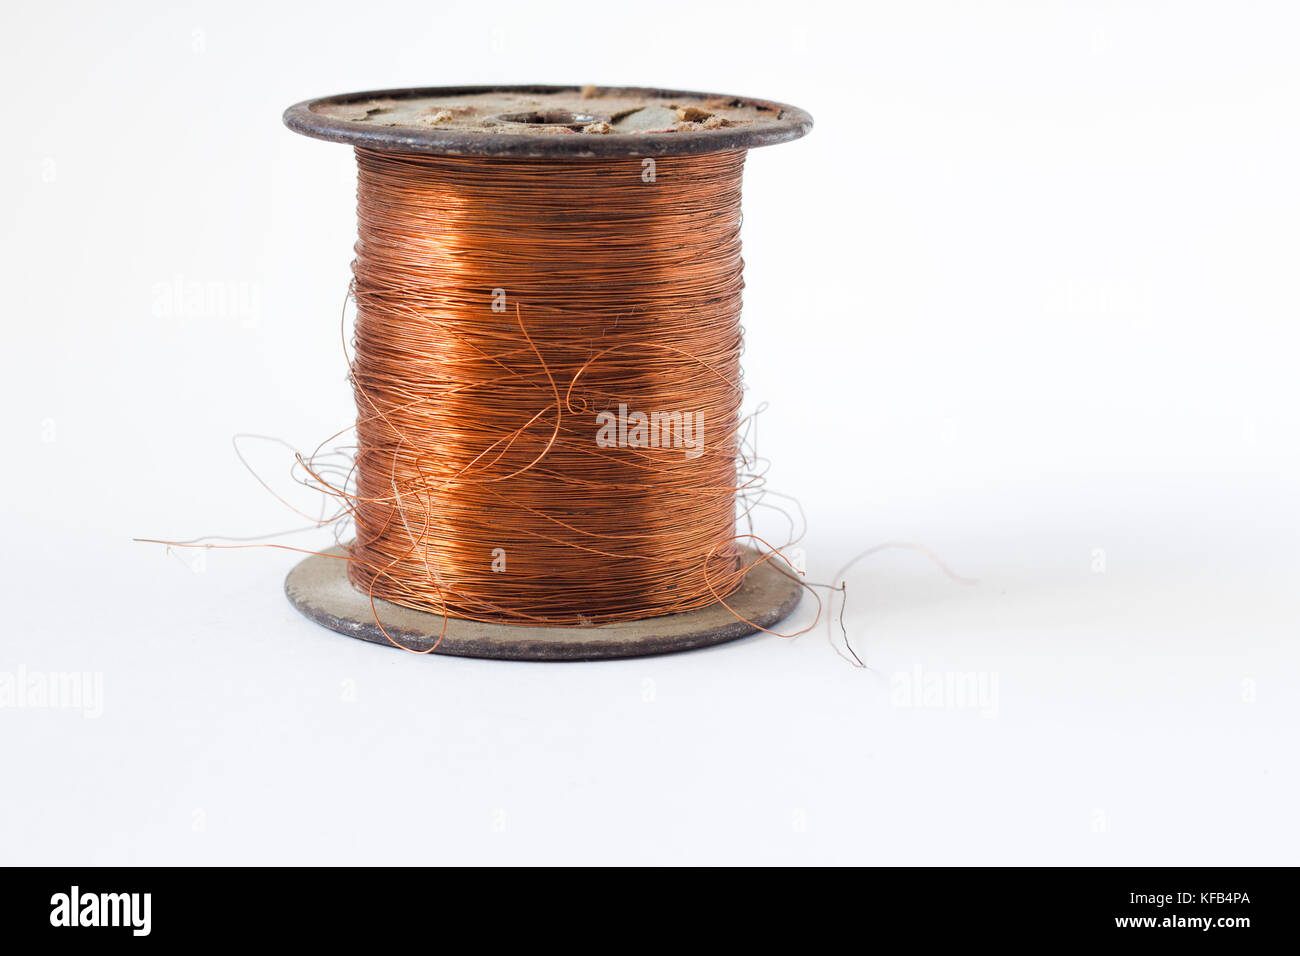 Copper wire on spool, isolated on white backgrounds, with clipping ...